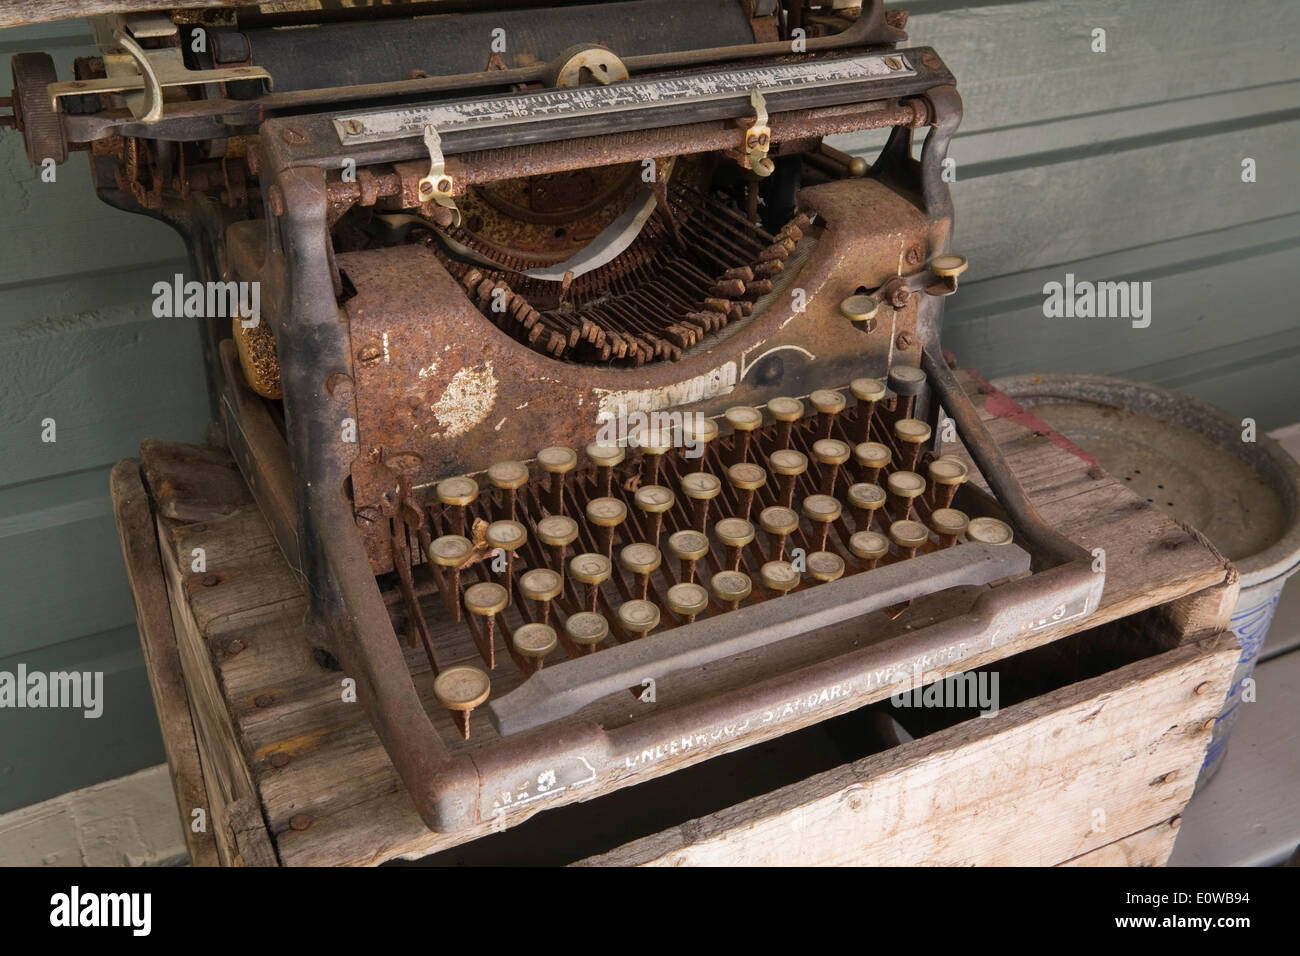 An old rusted Underwood manual typewriter, Quebec, Canada - Stock Image